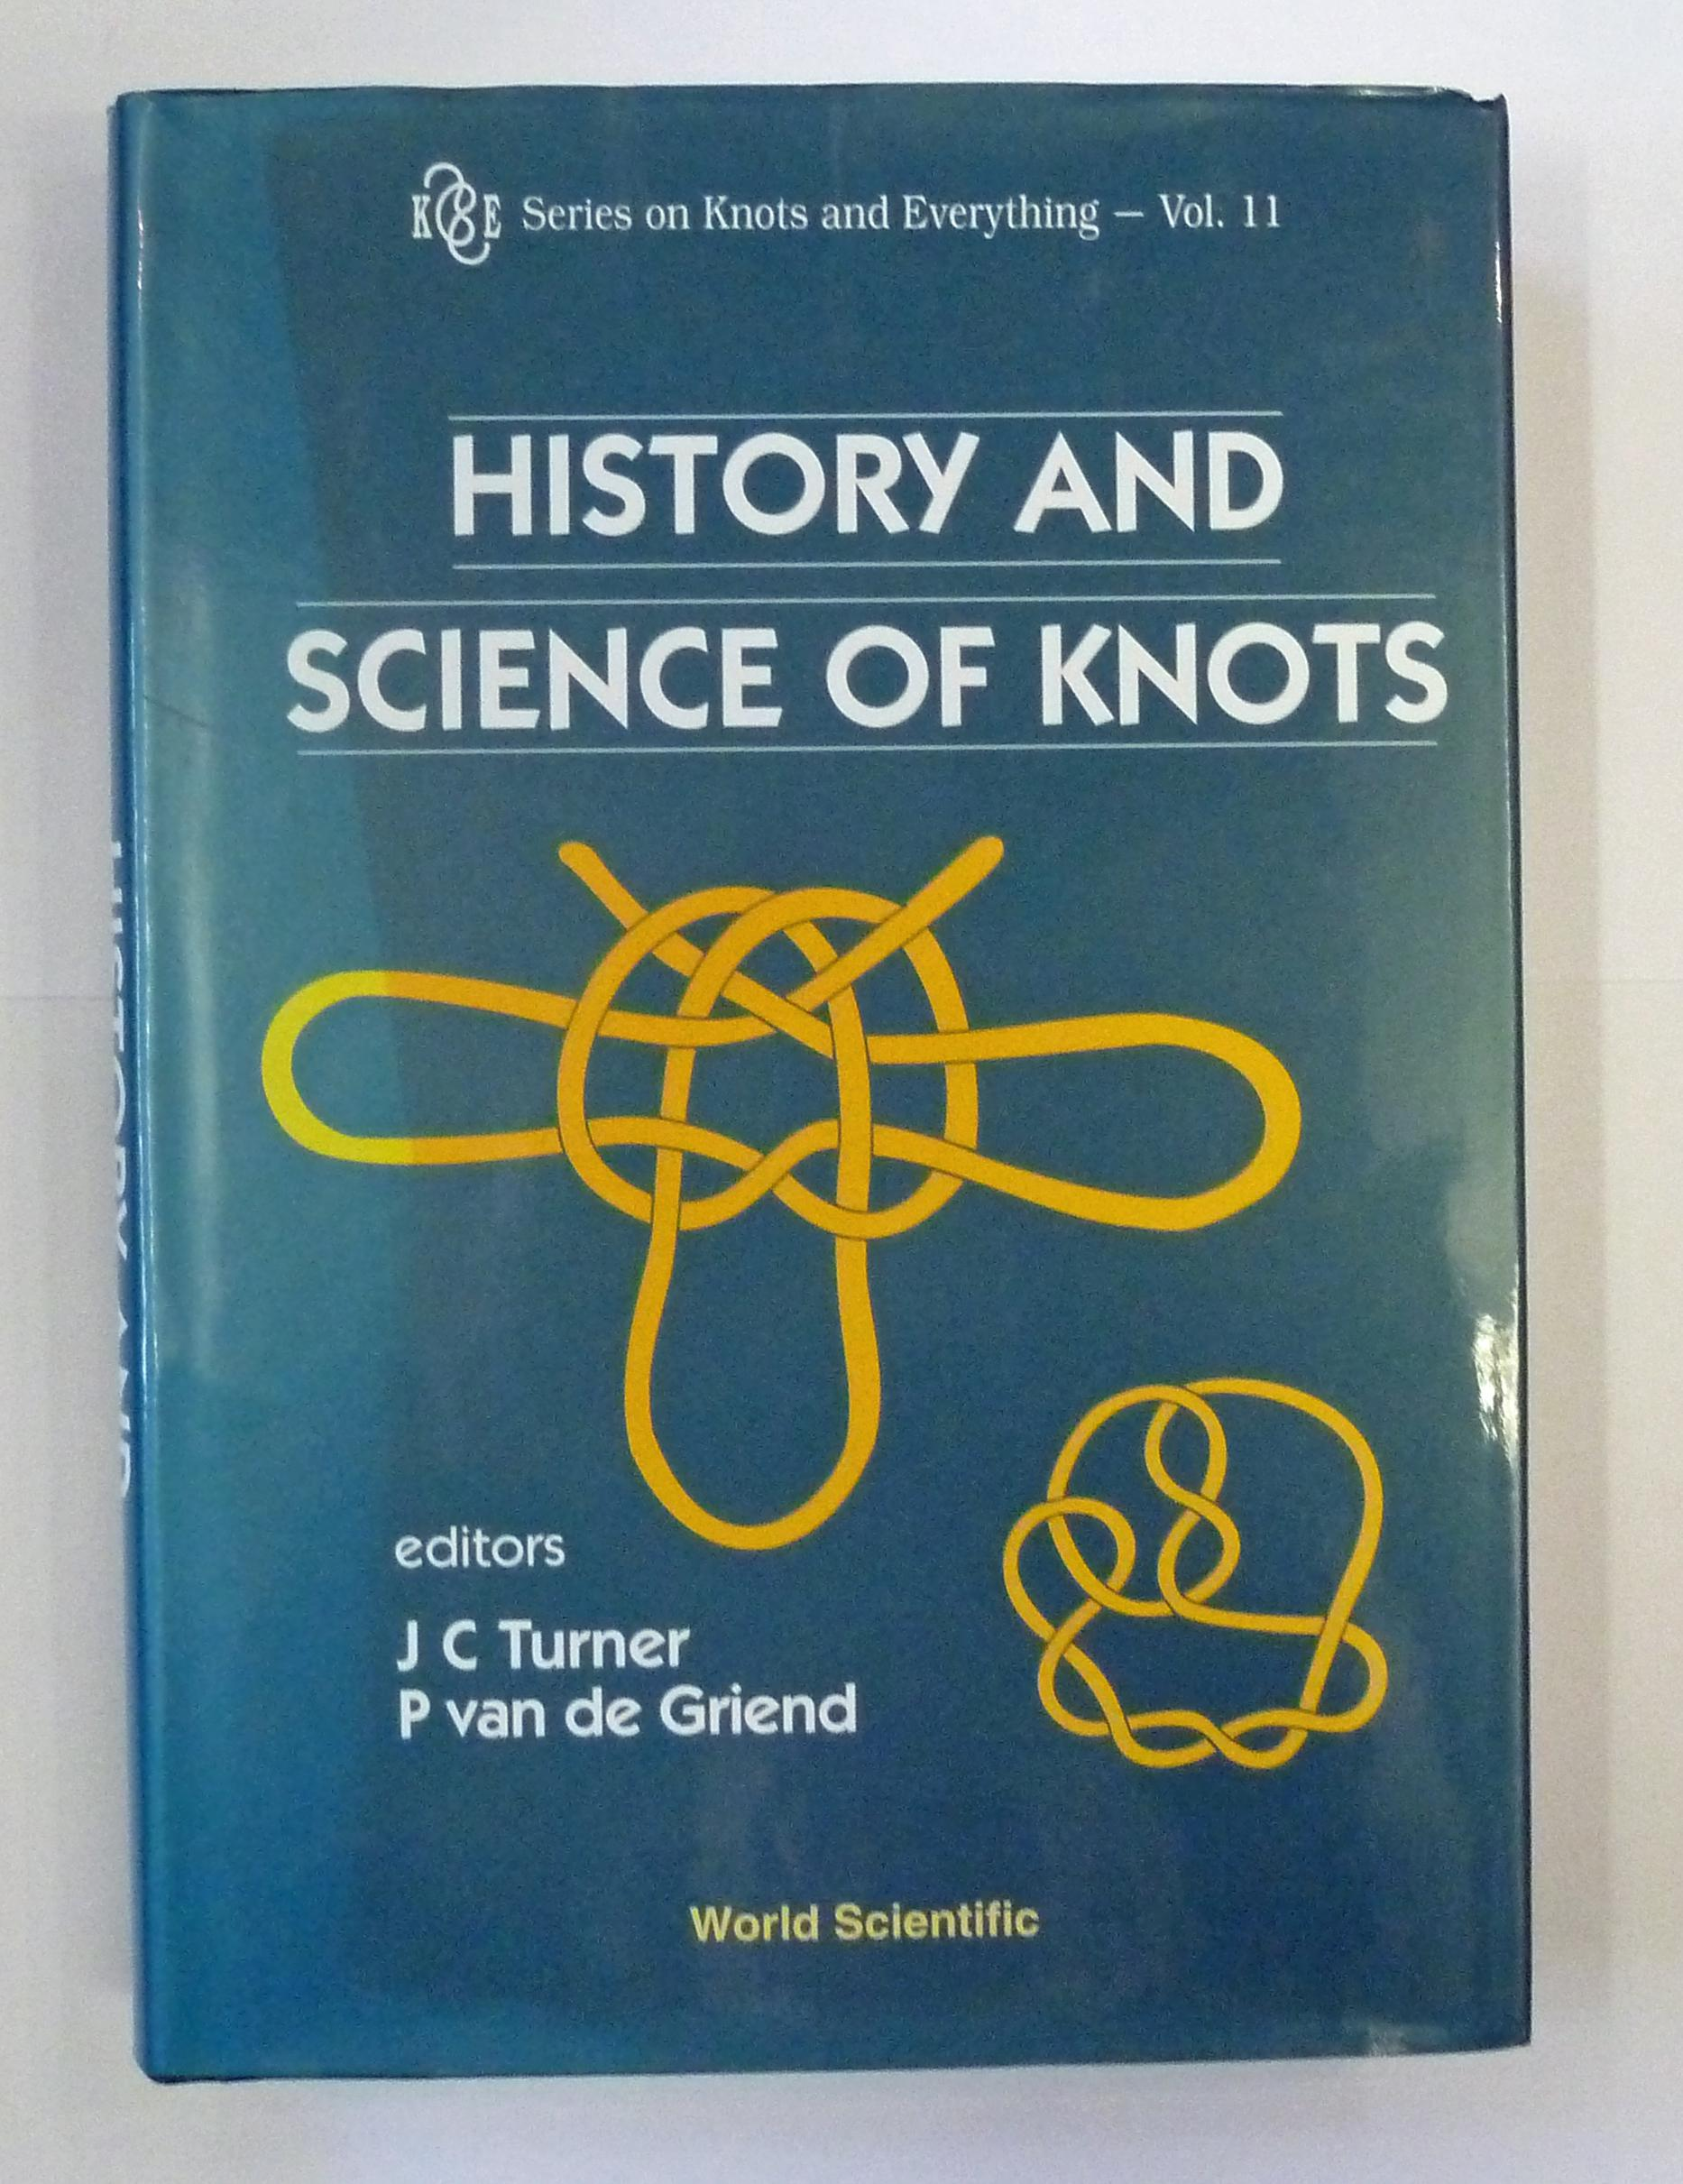 K&E Series On Knots and Everything Vol 11. History And Science Of Knots